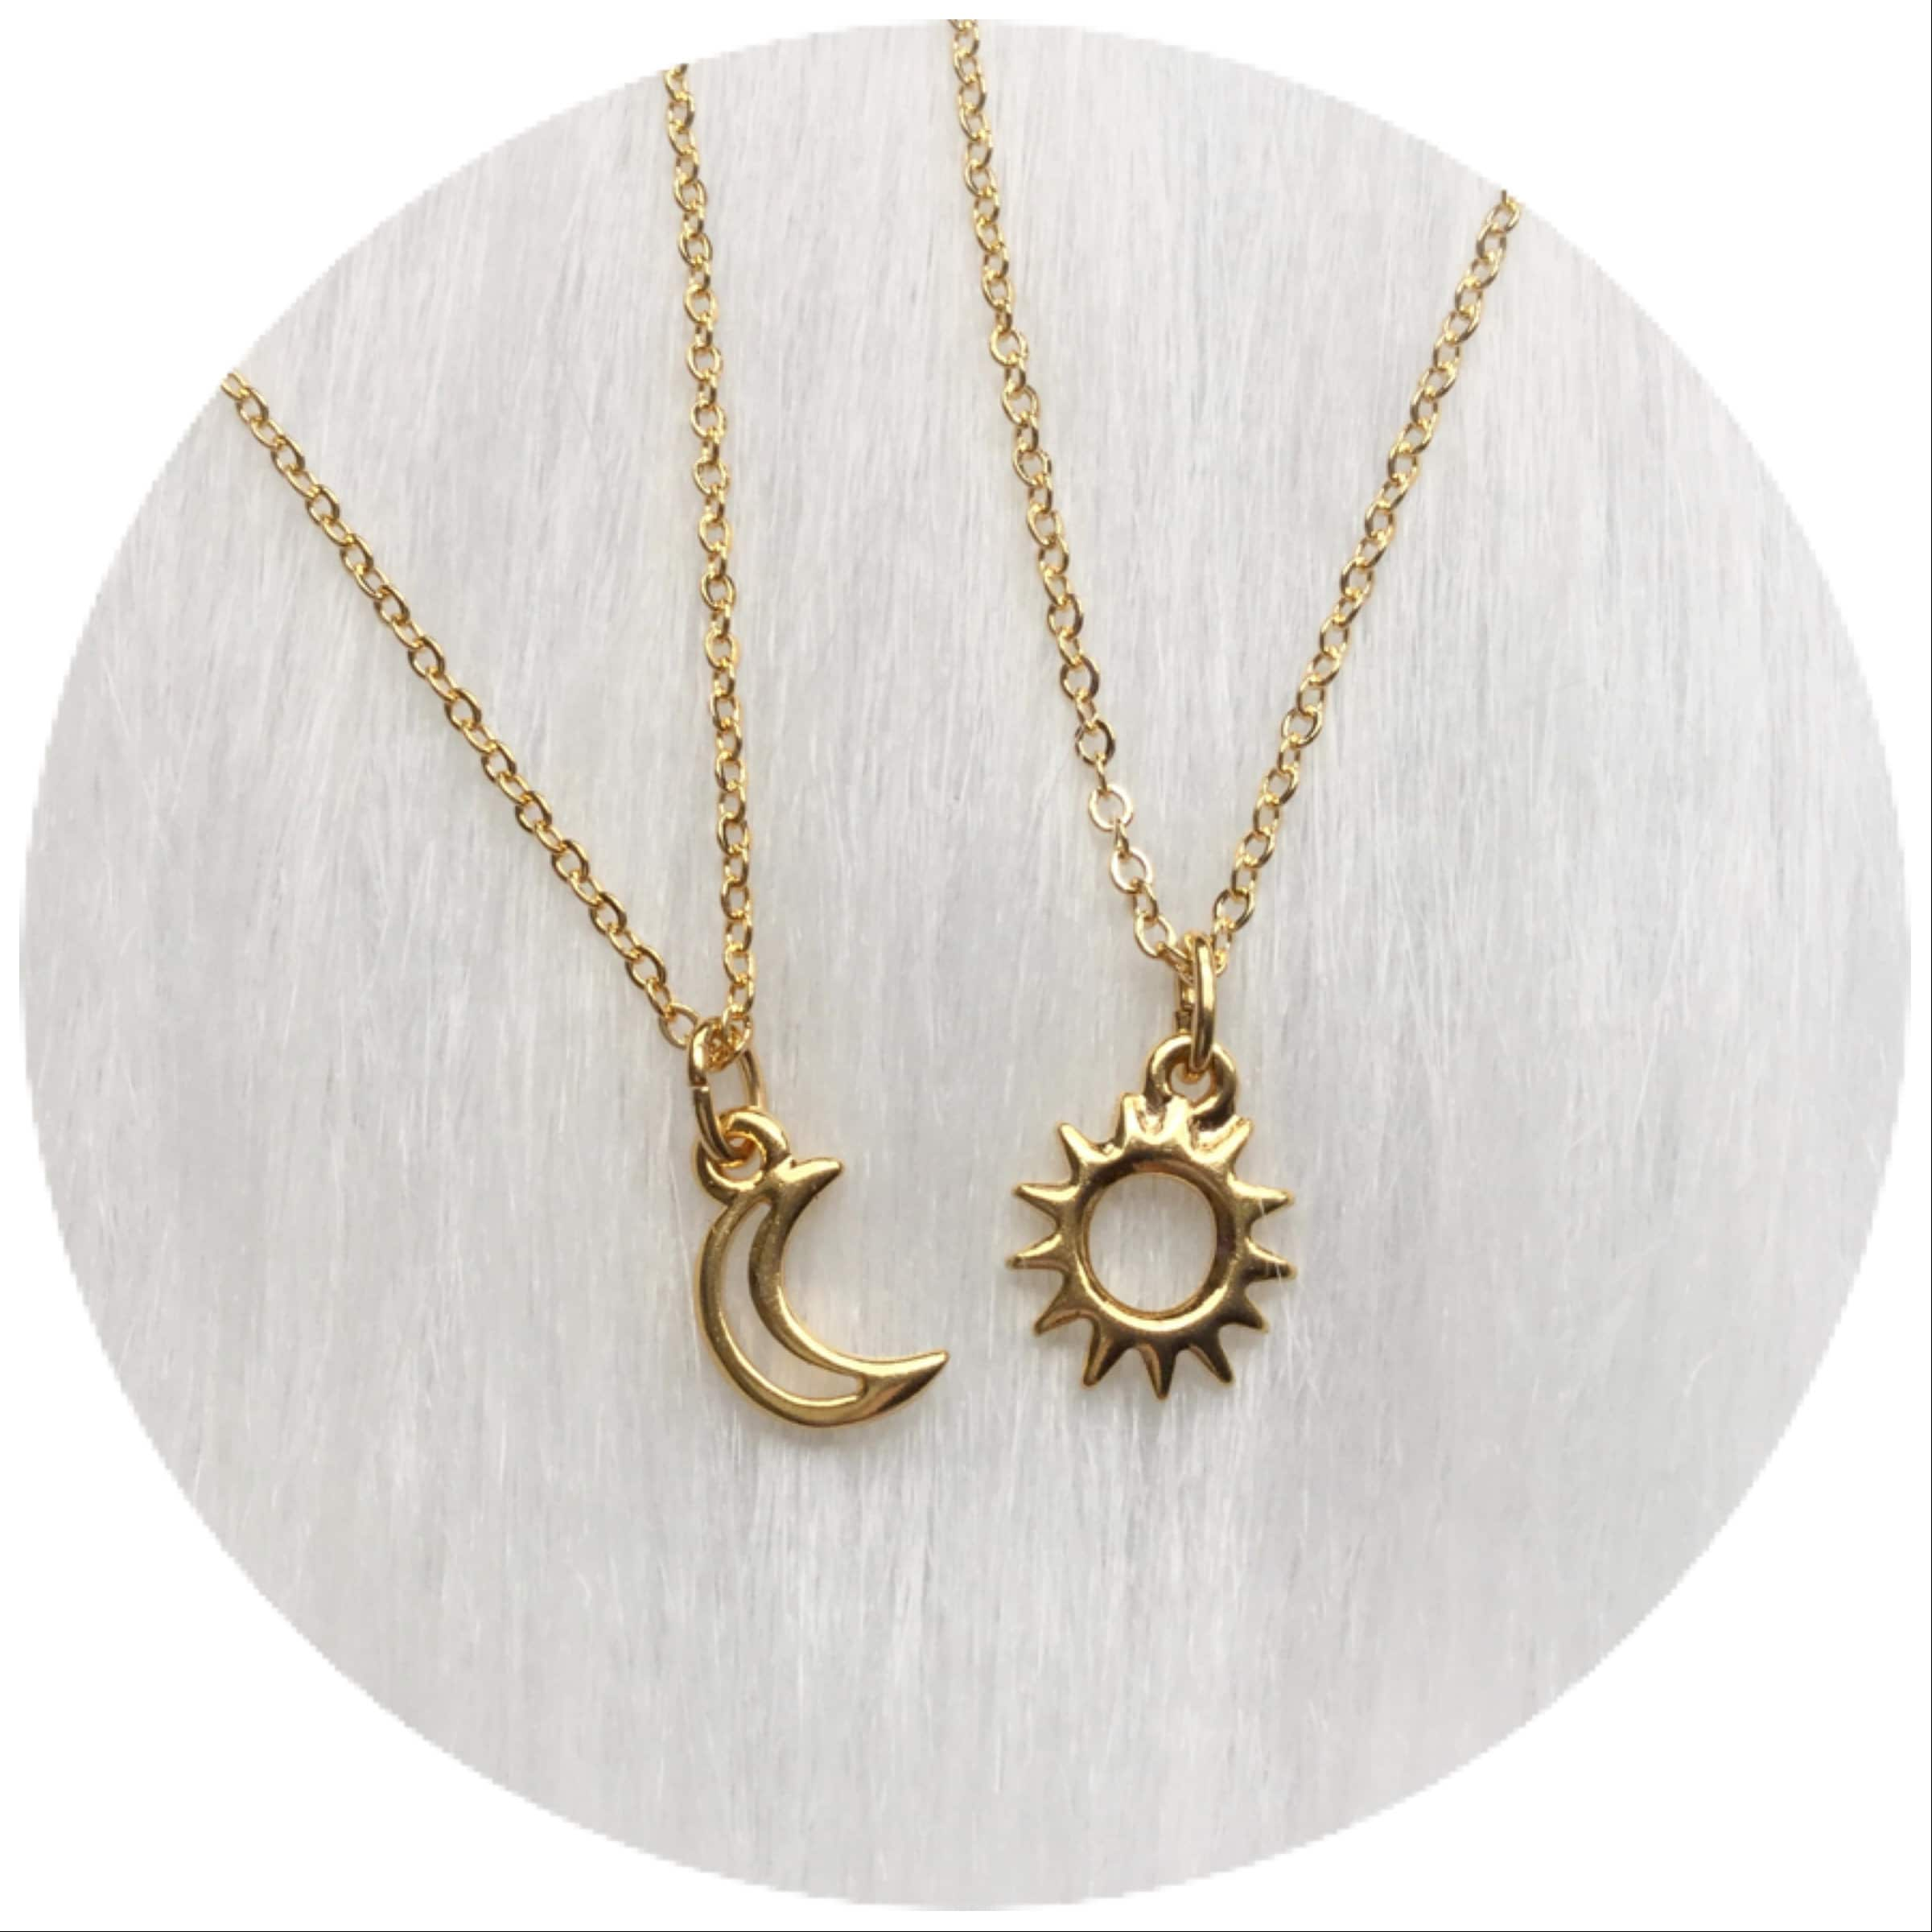 products mama and luna moon necklace me grandma stars stella sun charm necklaces